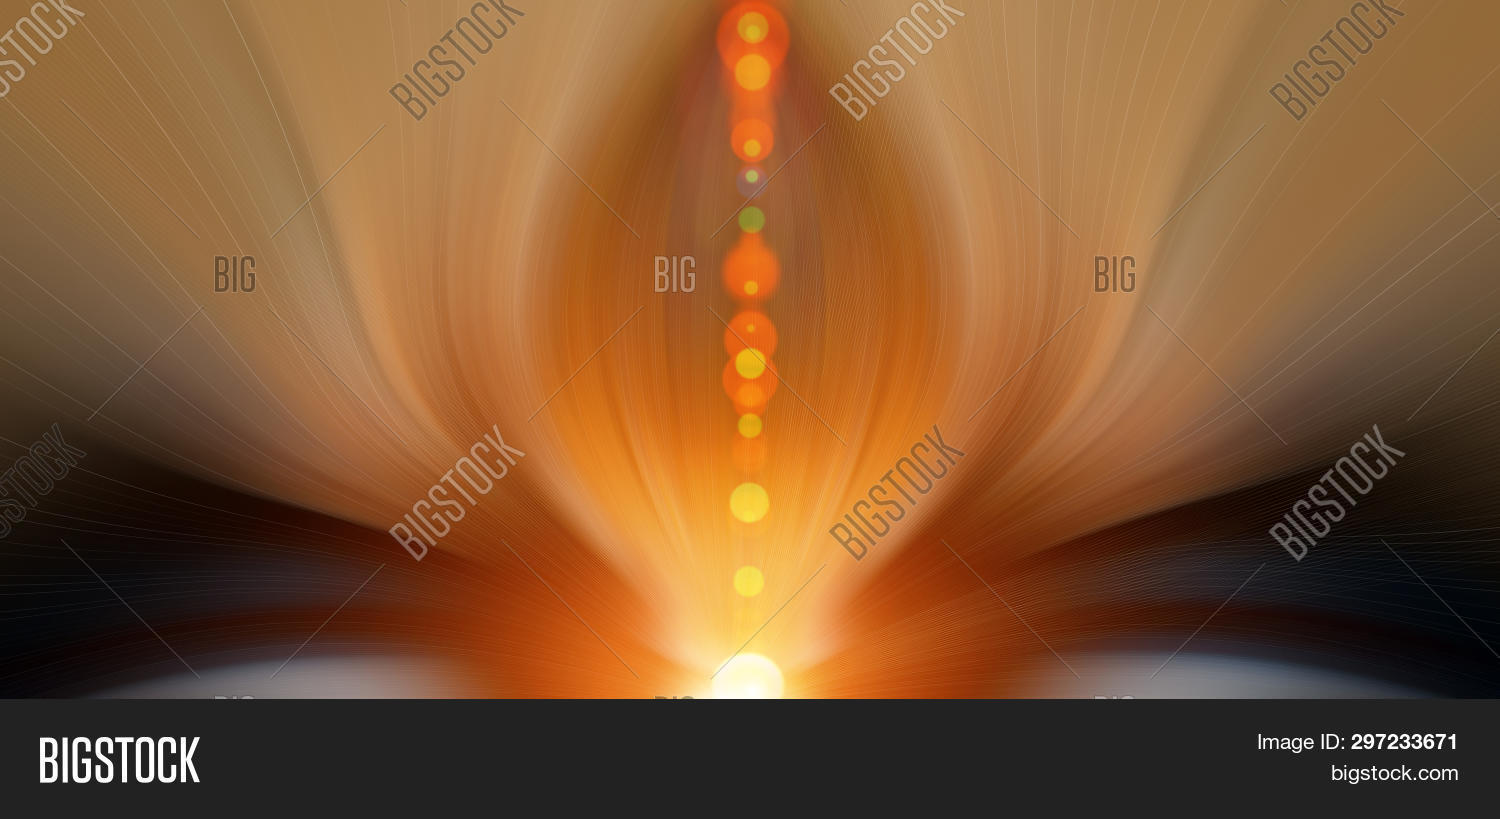 Abstract Energy Flower Image Photo Free Trial Bigstock